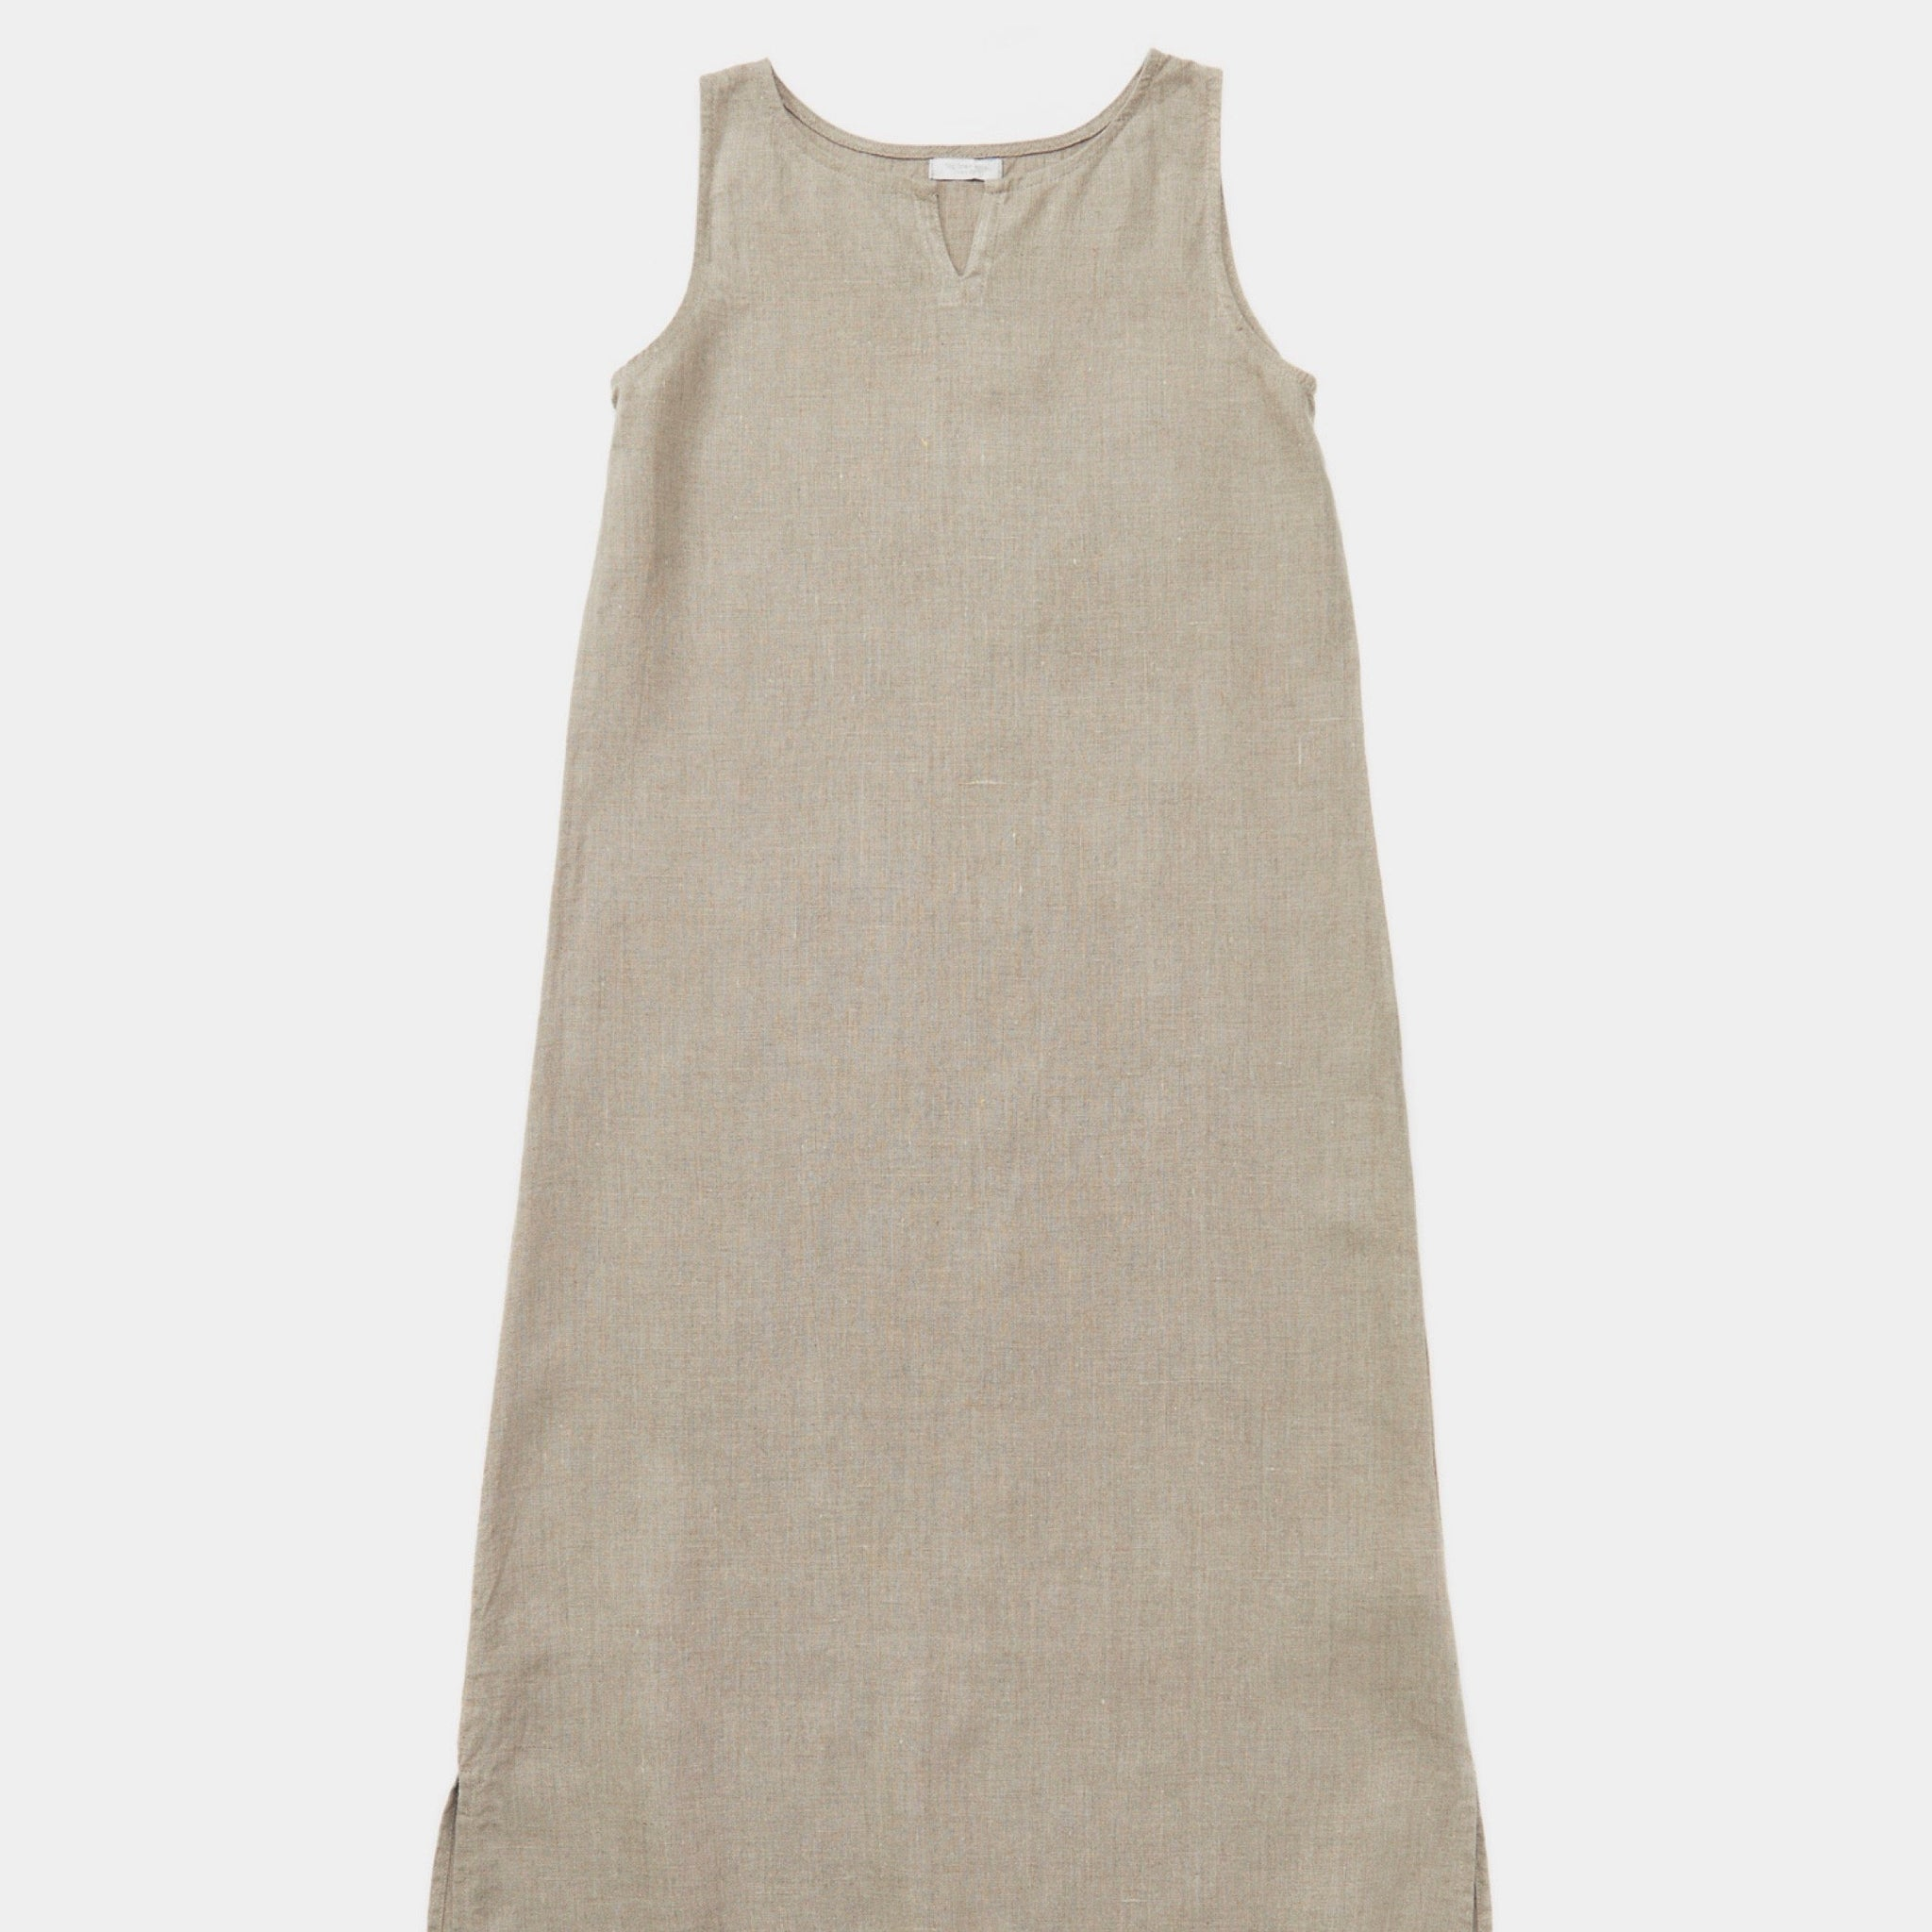 Close up of Fog Linen Work Leah Sleeveless Night Shirt in natural linen